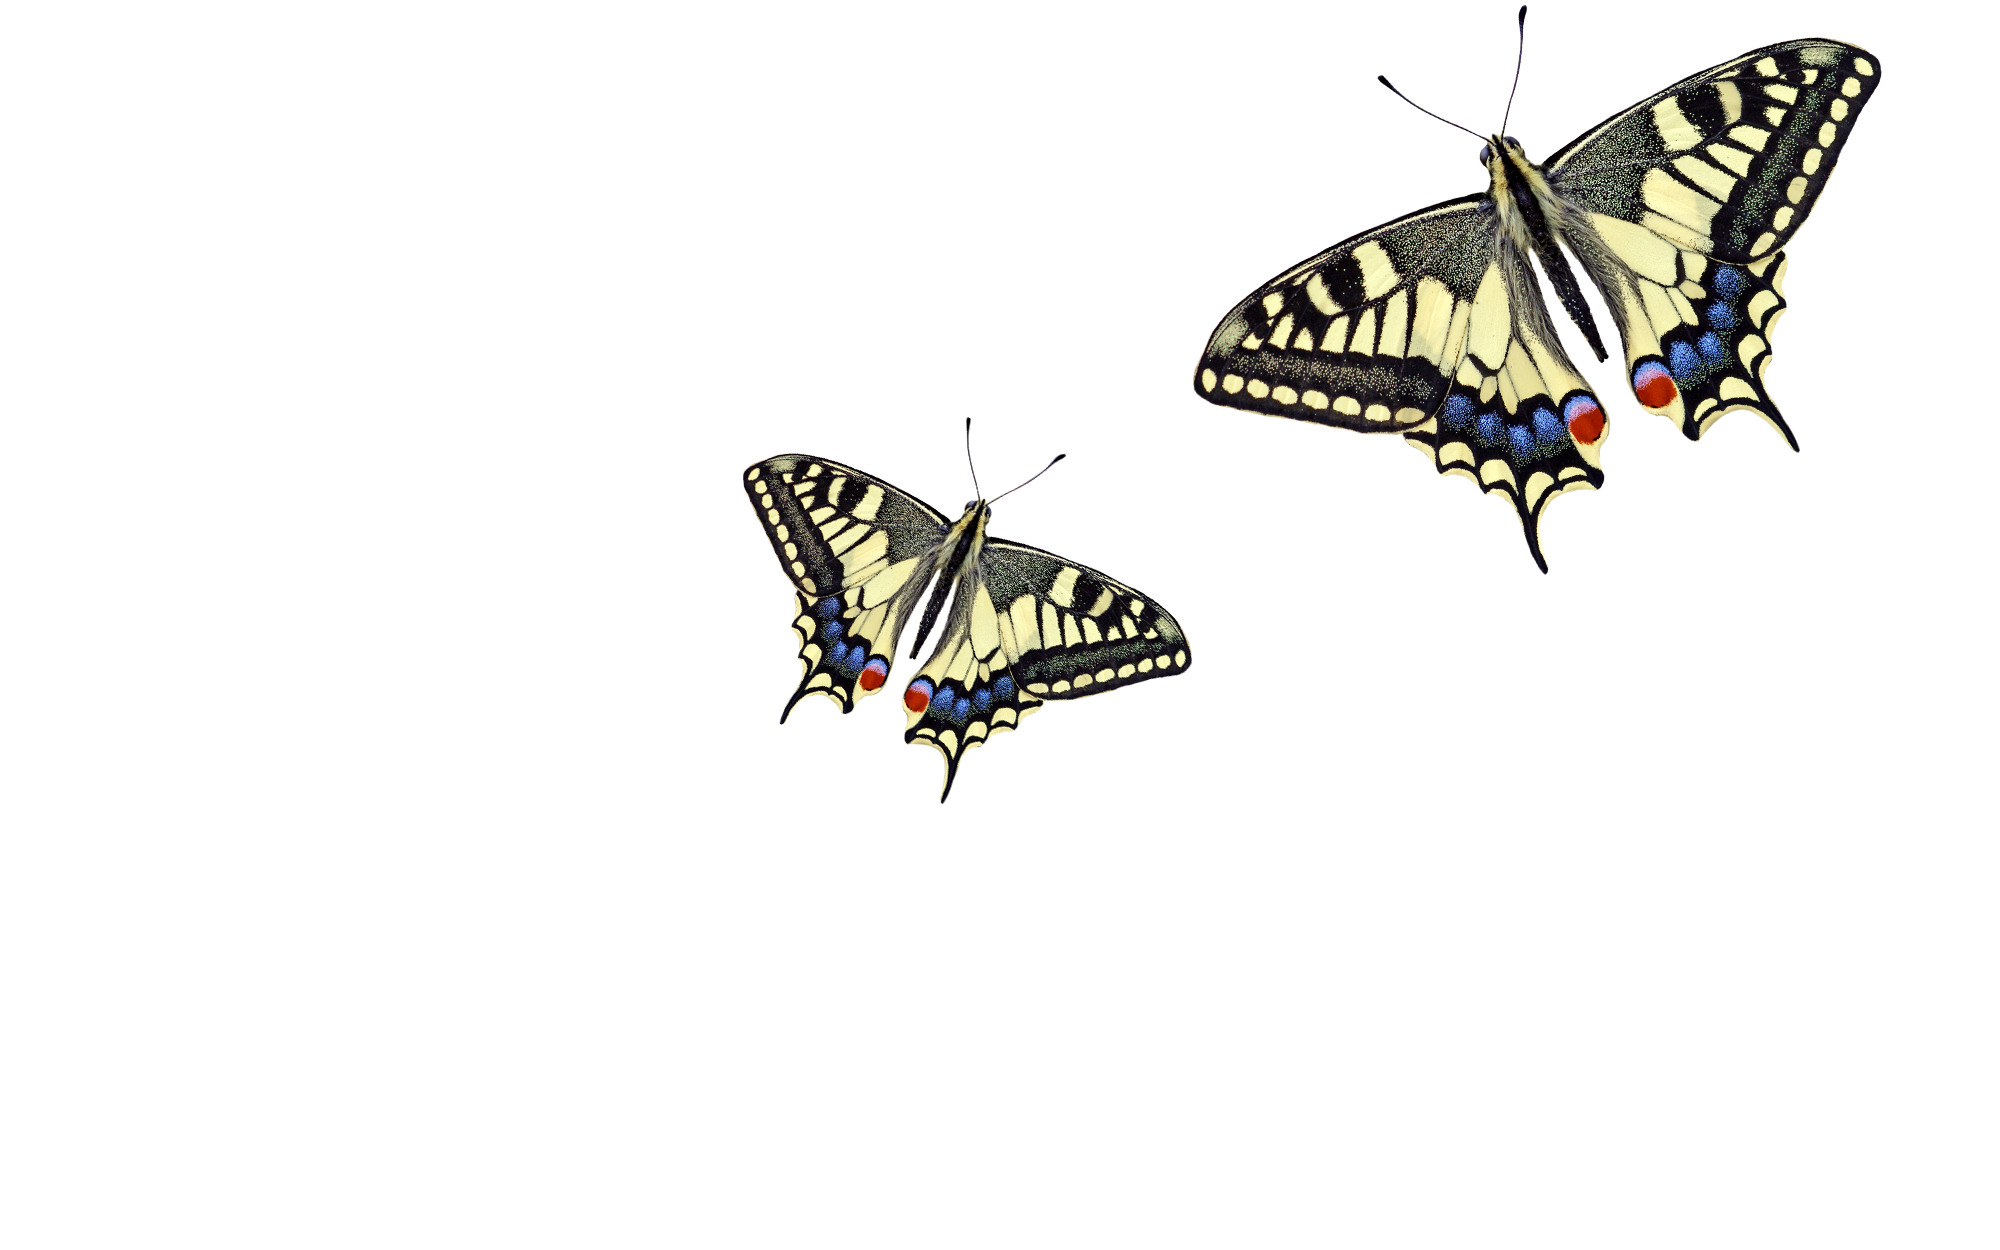 Illustration of two butterflies